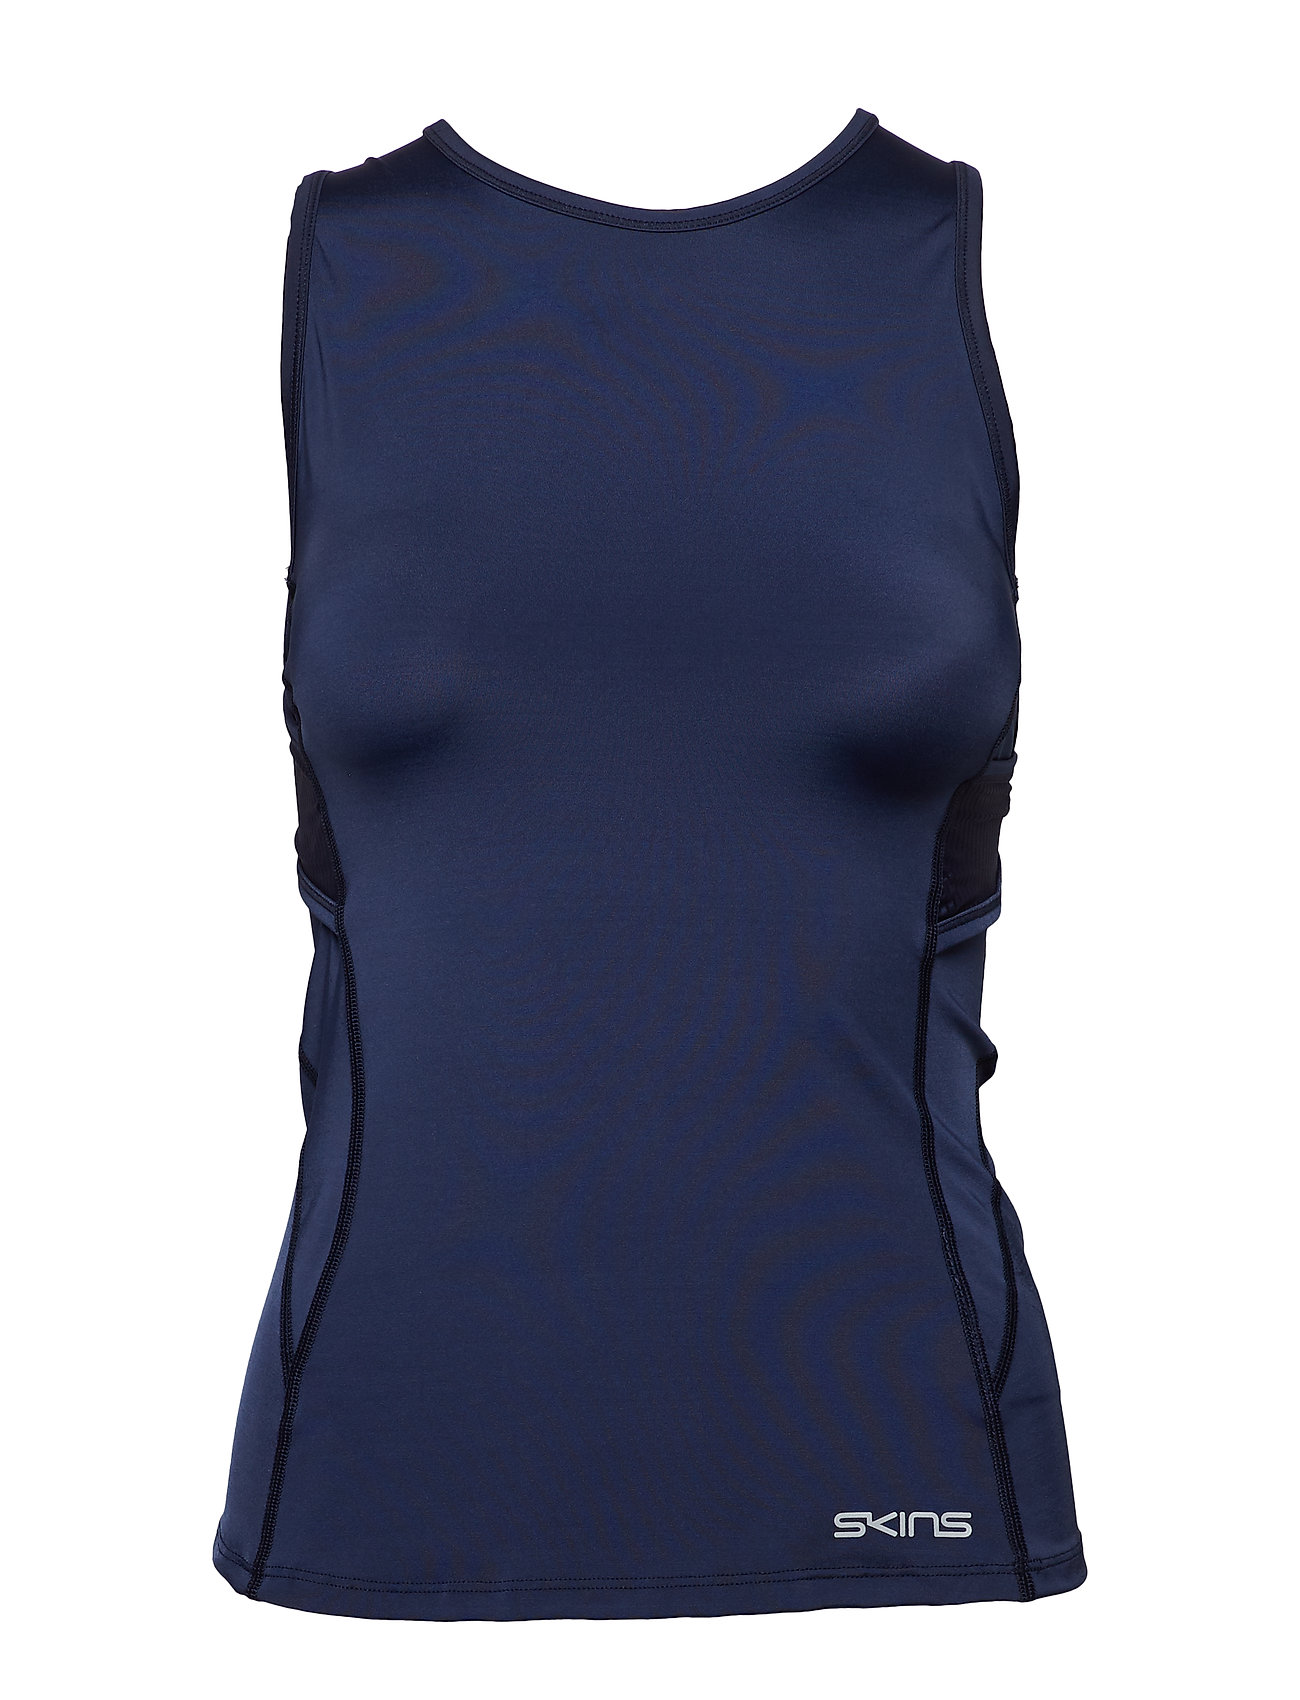 Skins DNAmic Primary Womens S/L Top - NAVY BLUE